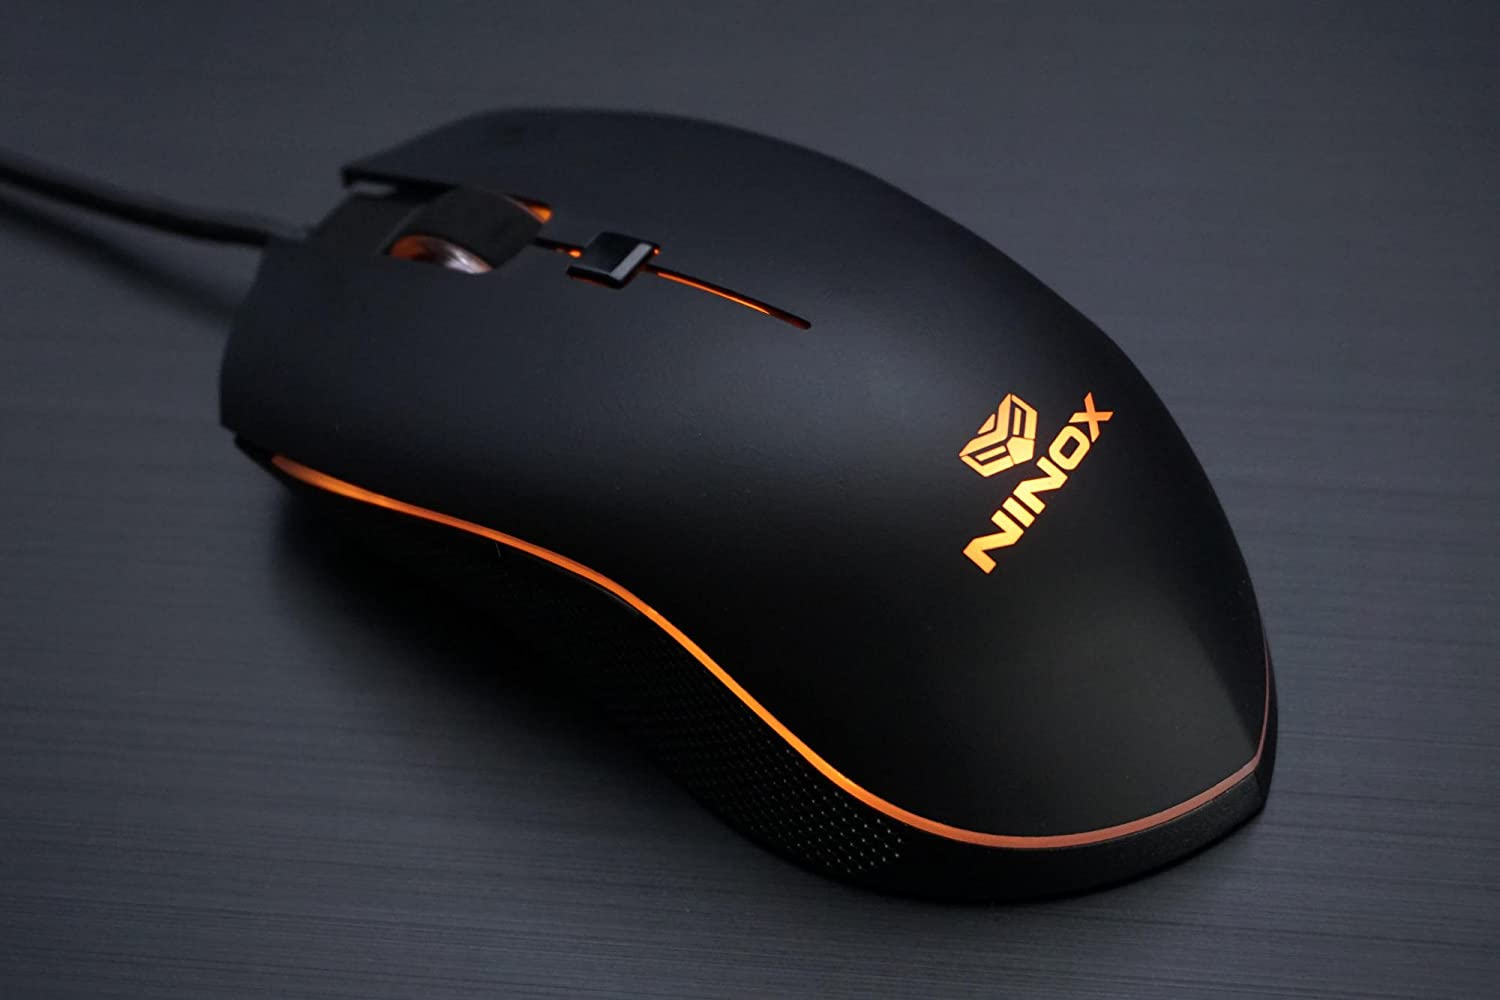 Amazon com: Ninox Venator Gaming Mouse - Lightweight, PMW